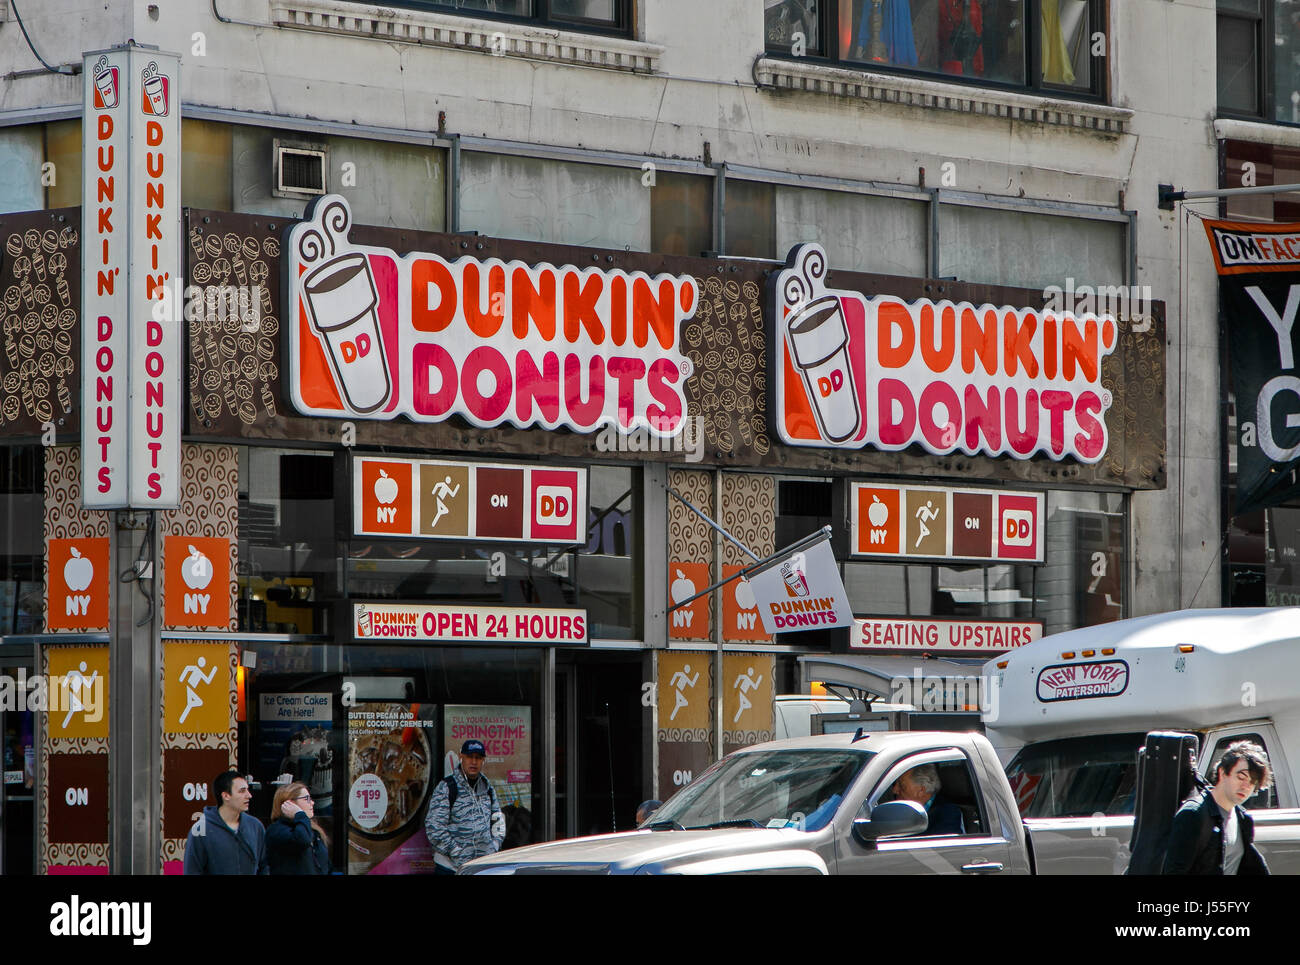 Dunkin Donuts Stock Photos  Dunkin Donuts Stock Images Alamy - Dunkin donuts location map usa